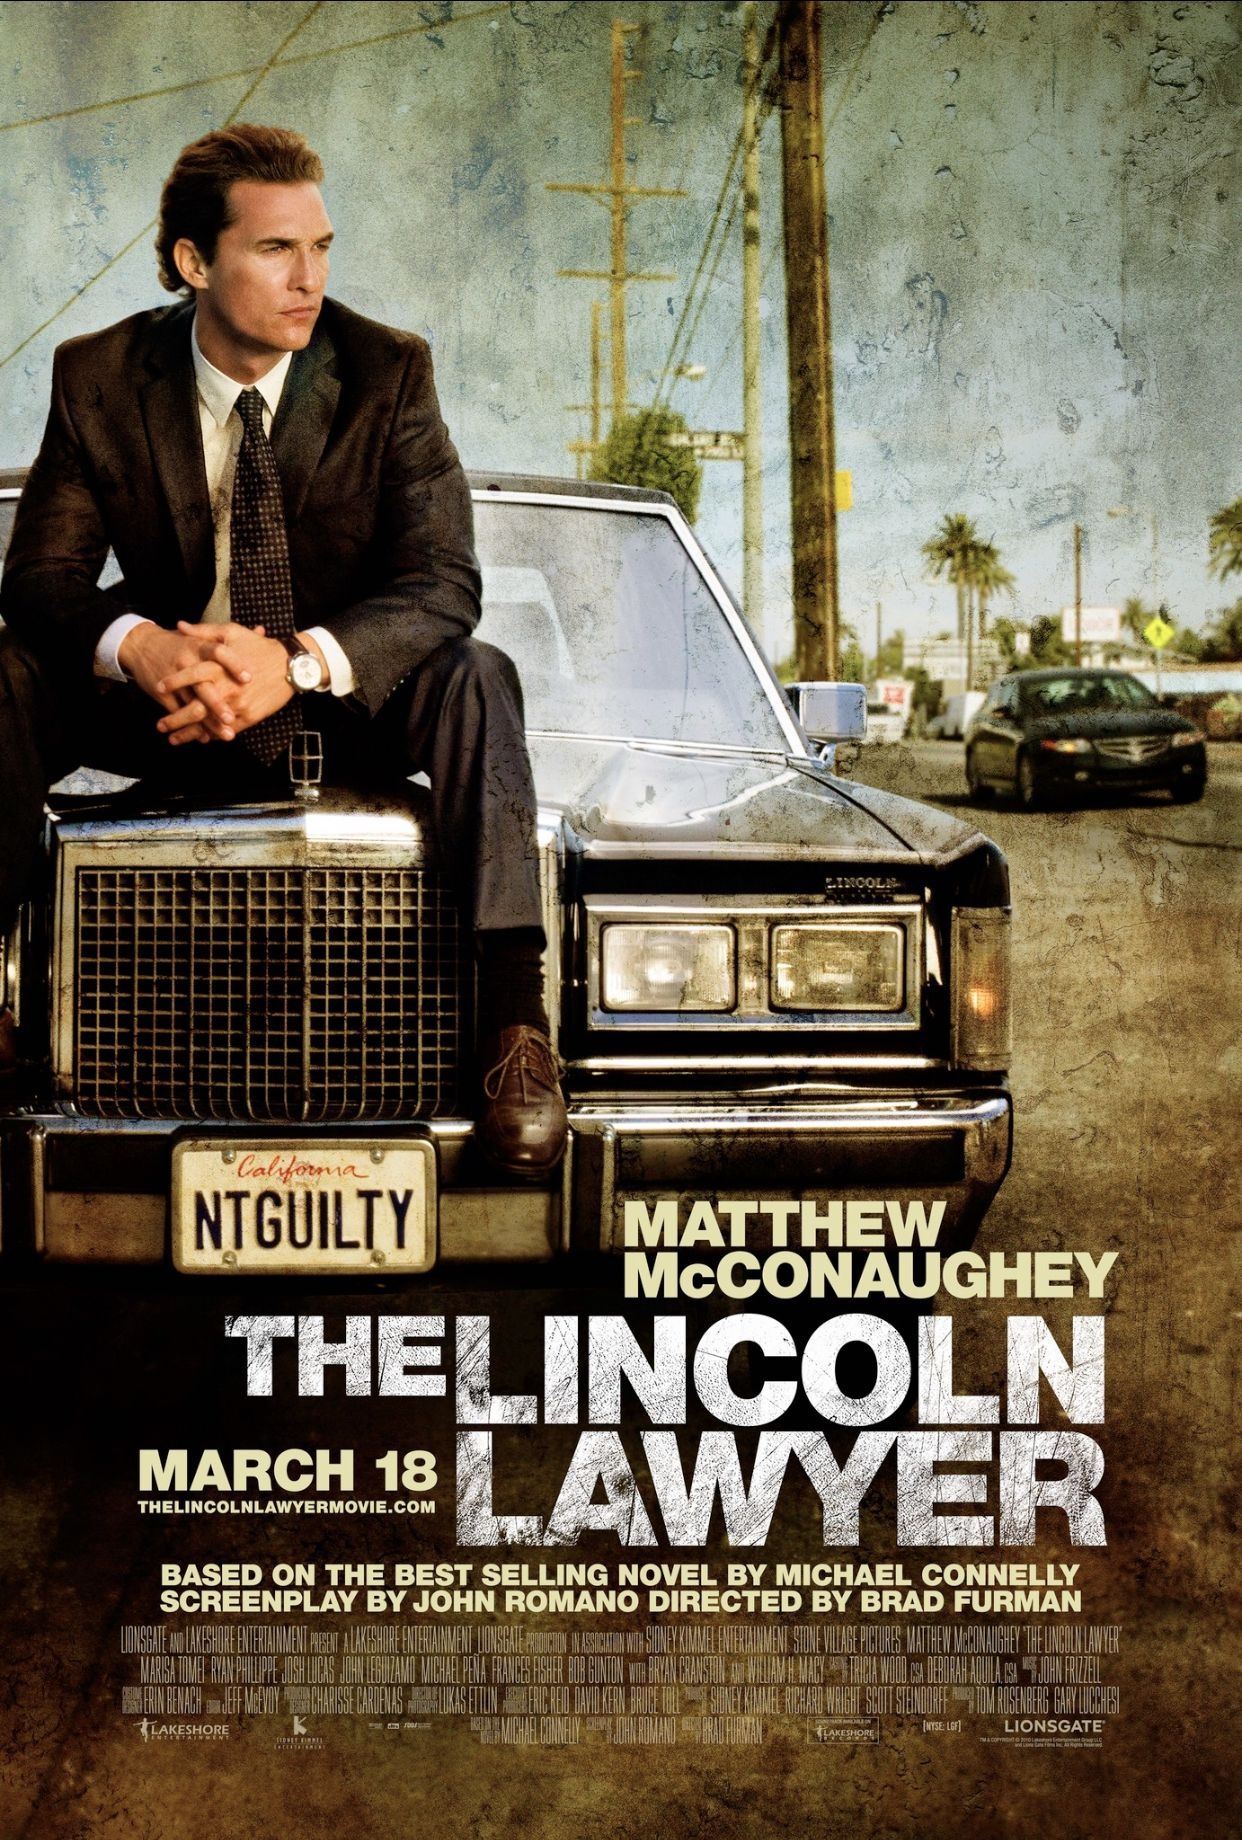 Pin By Laura Rehak On Movies I Luv With Images Lincoln Lawyer I Movie Michael Connelly